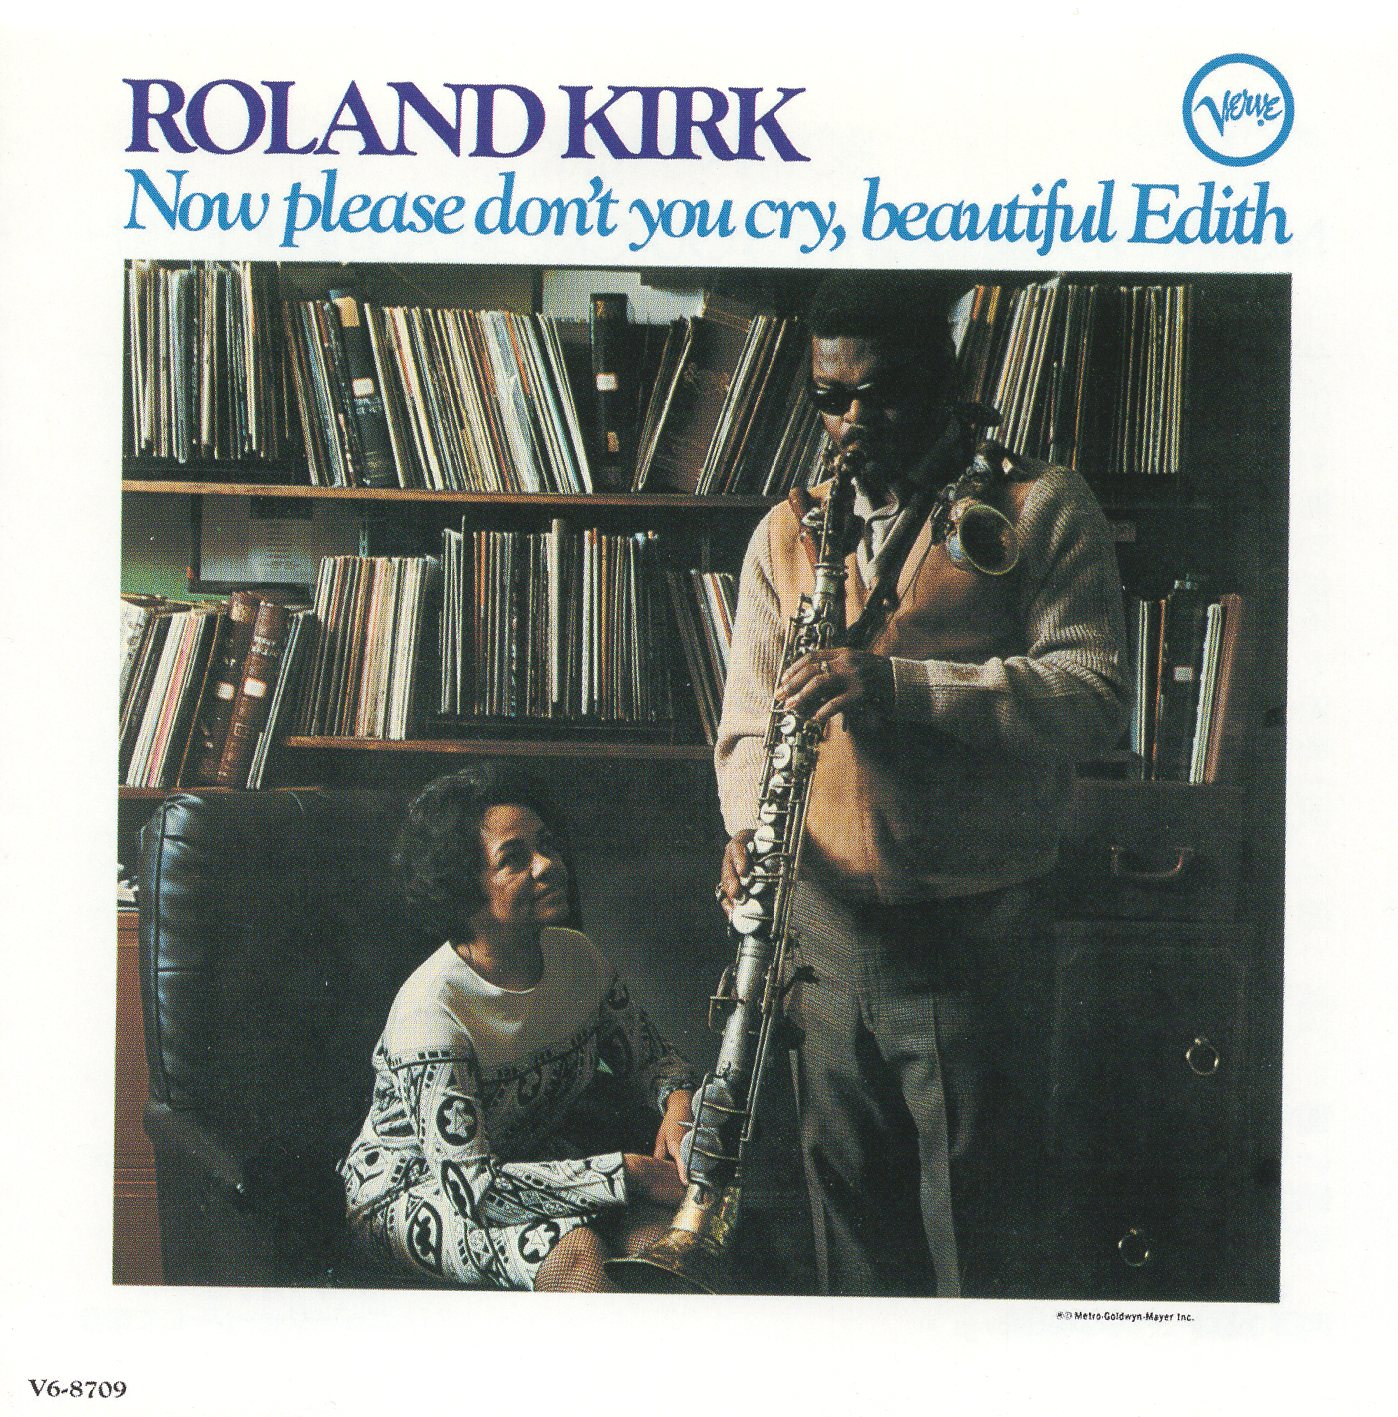 """Now please don't you cry, beautiful Edith"" Rahsaan Roland Kirk"